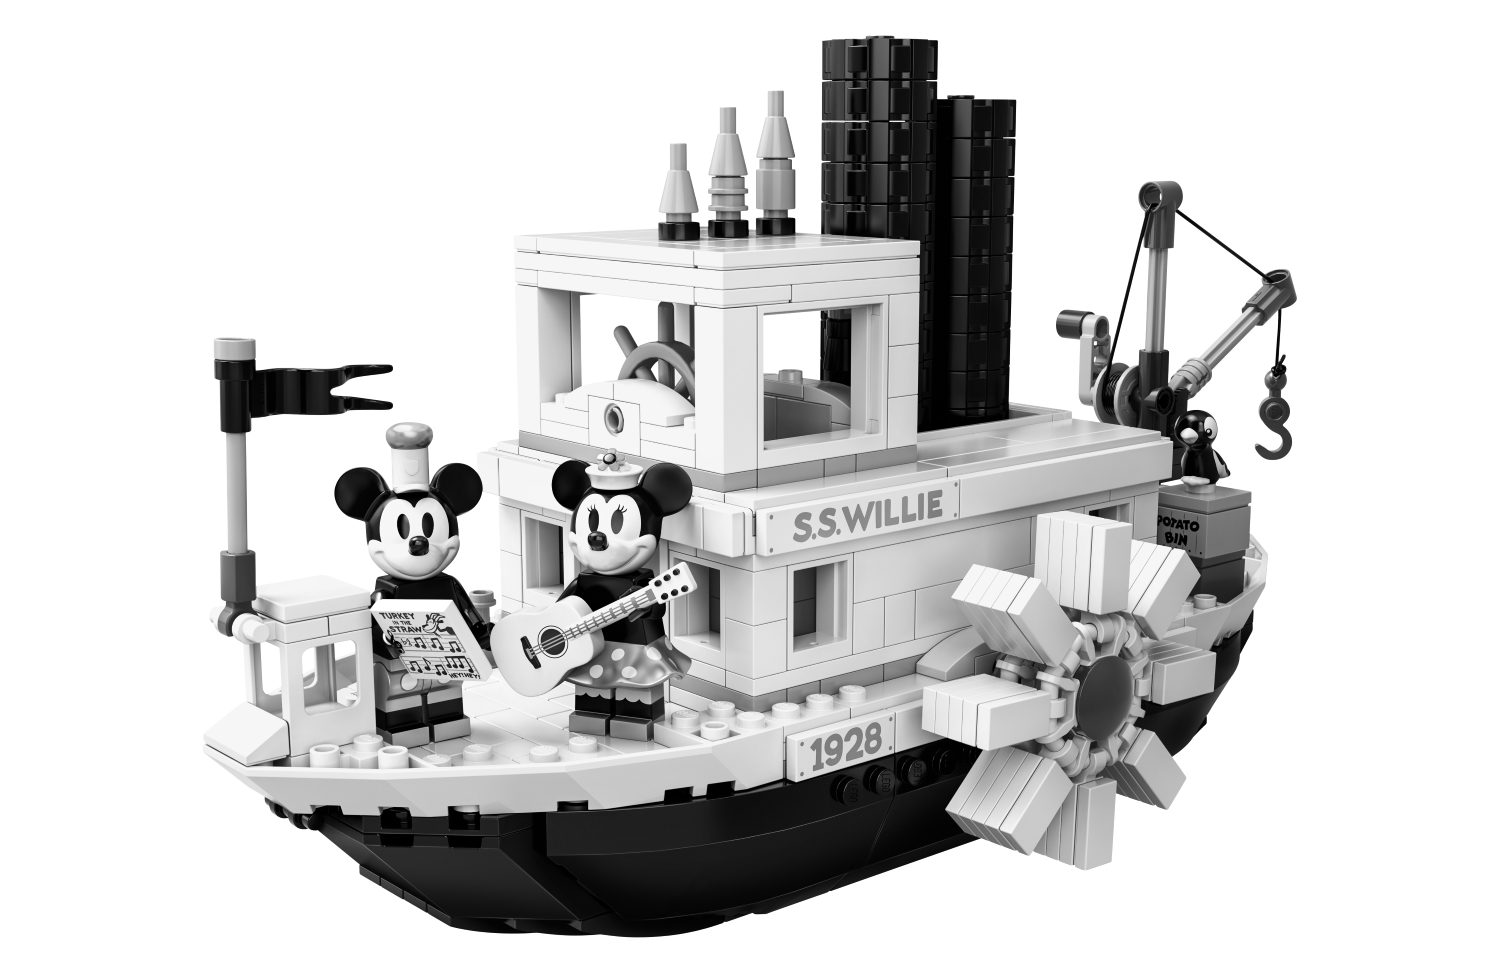 Lego embraces Disney retro with Steamboat Willie fan-designed set